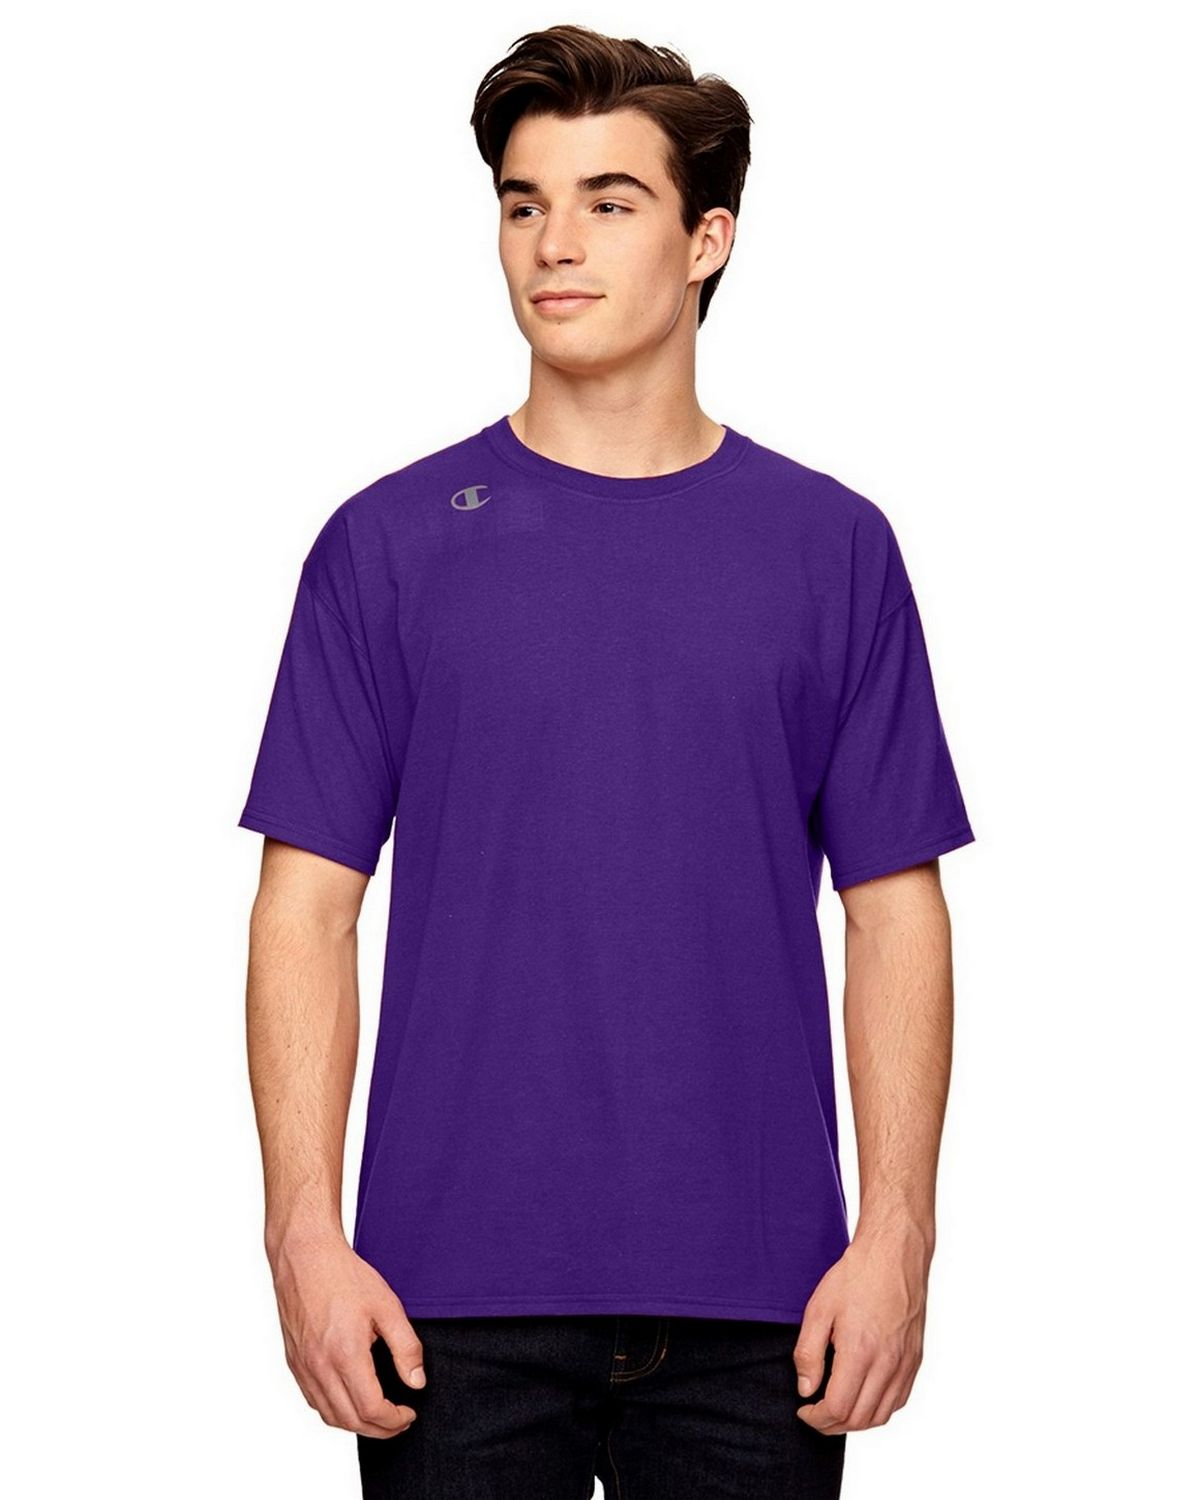 Champion T380 Vapor Cotton T-Shirt - Sport Purple - XL T380